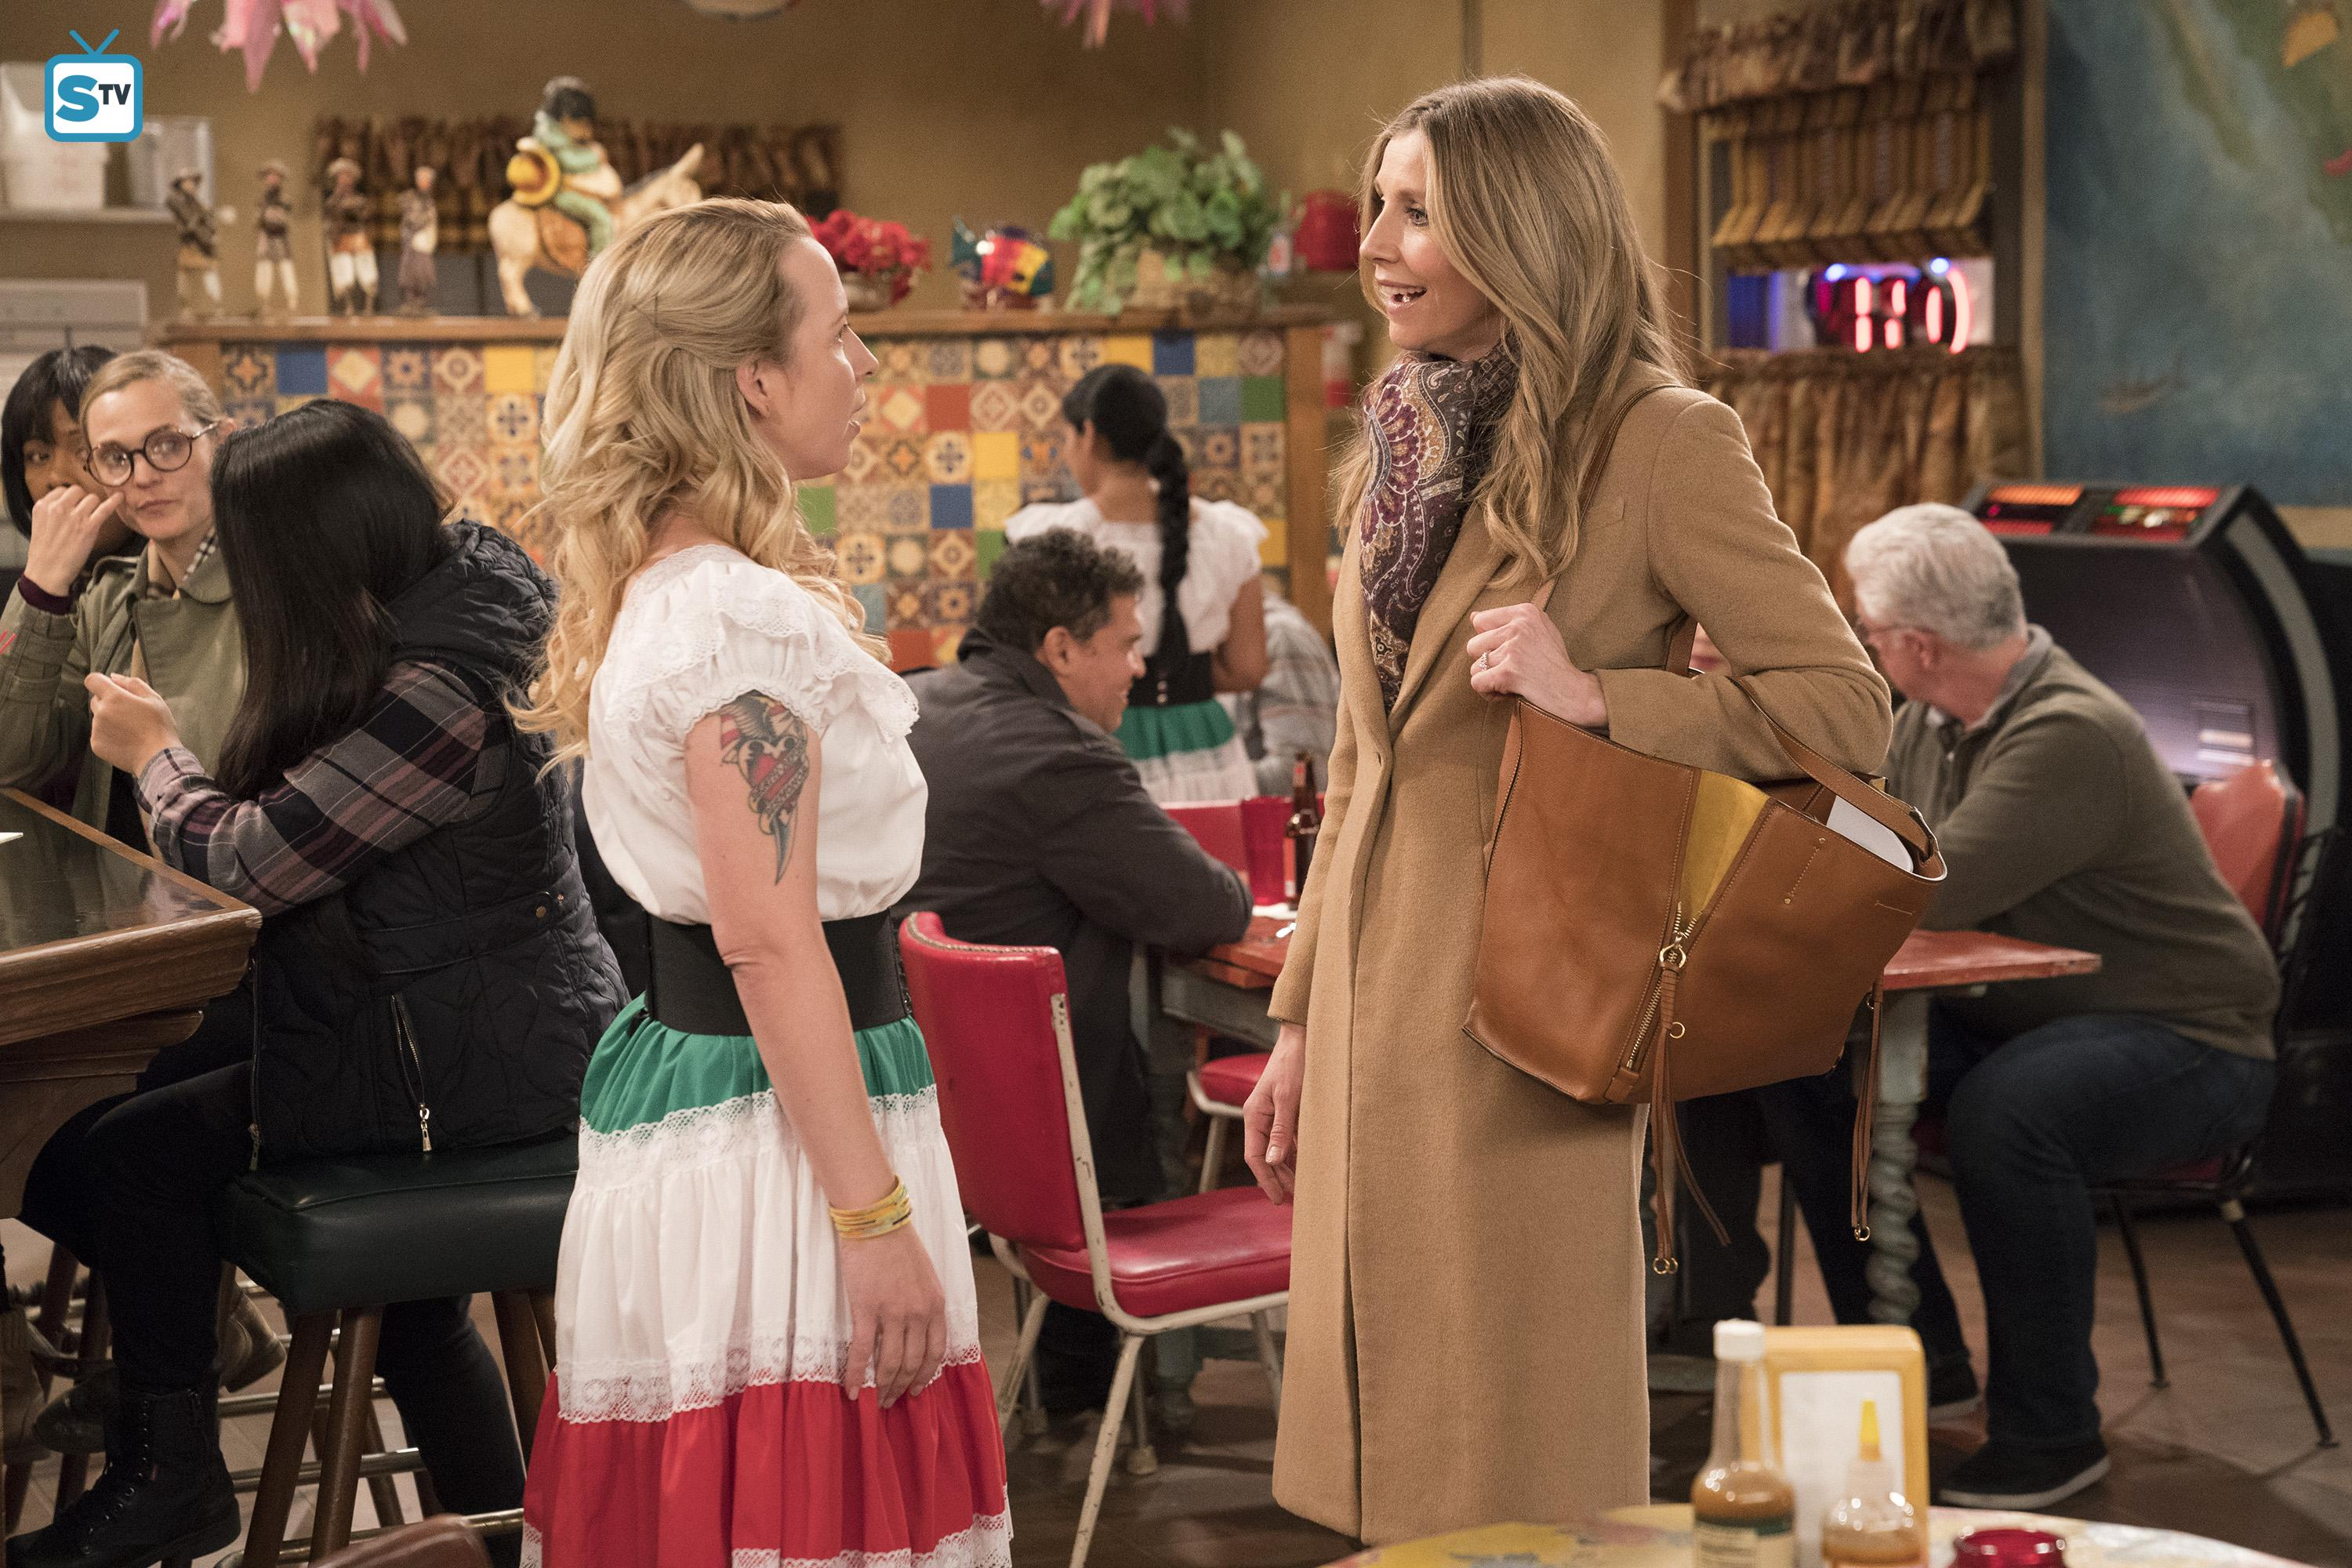 10x01 - Twenty Years to Life - Becky and Andrea